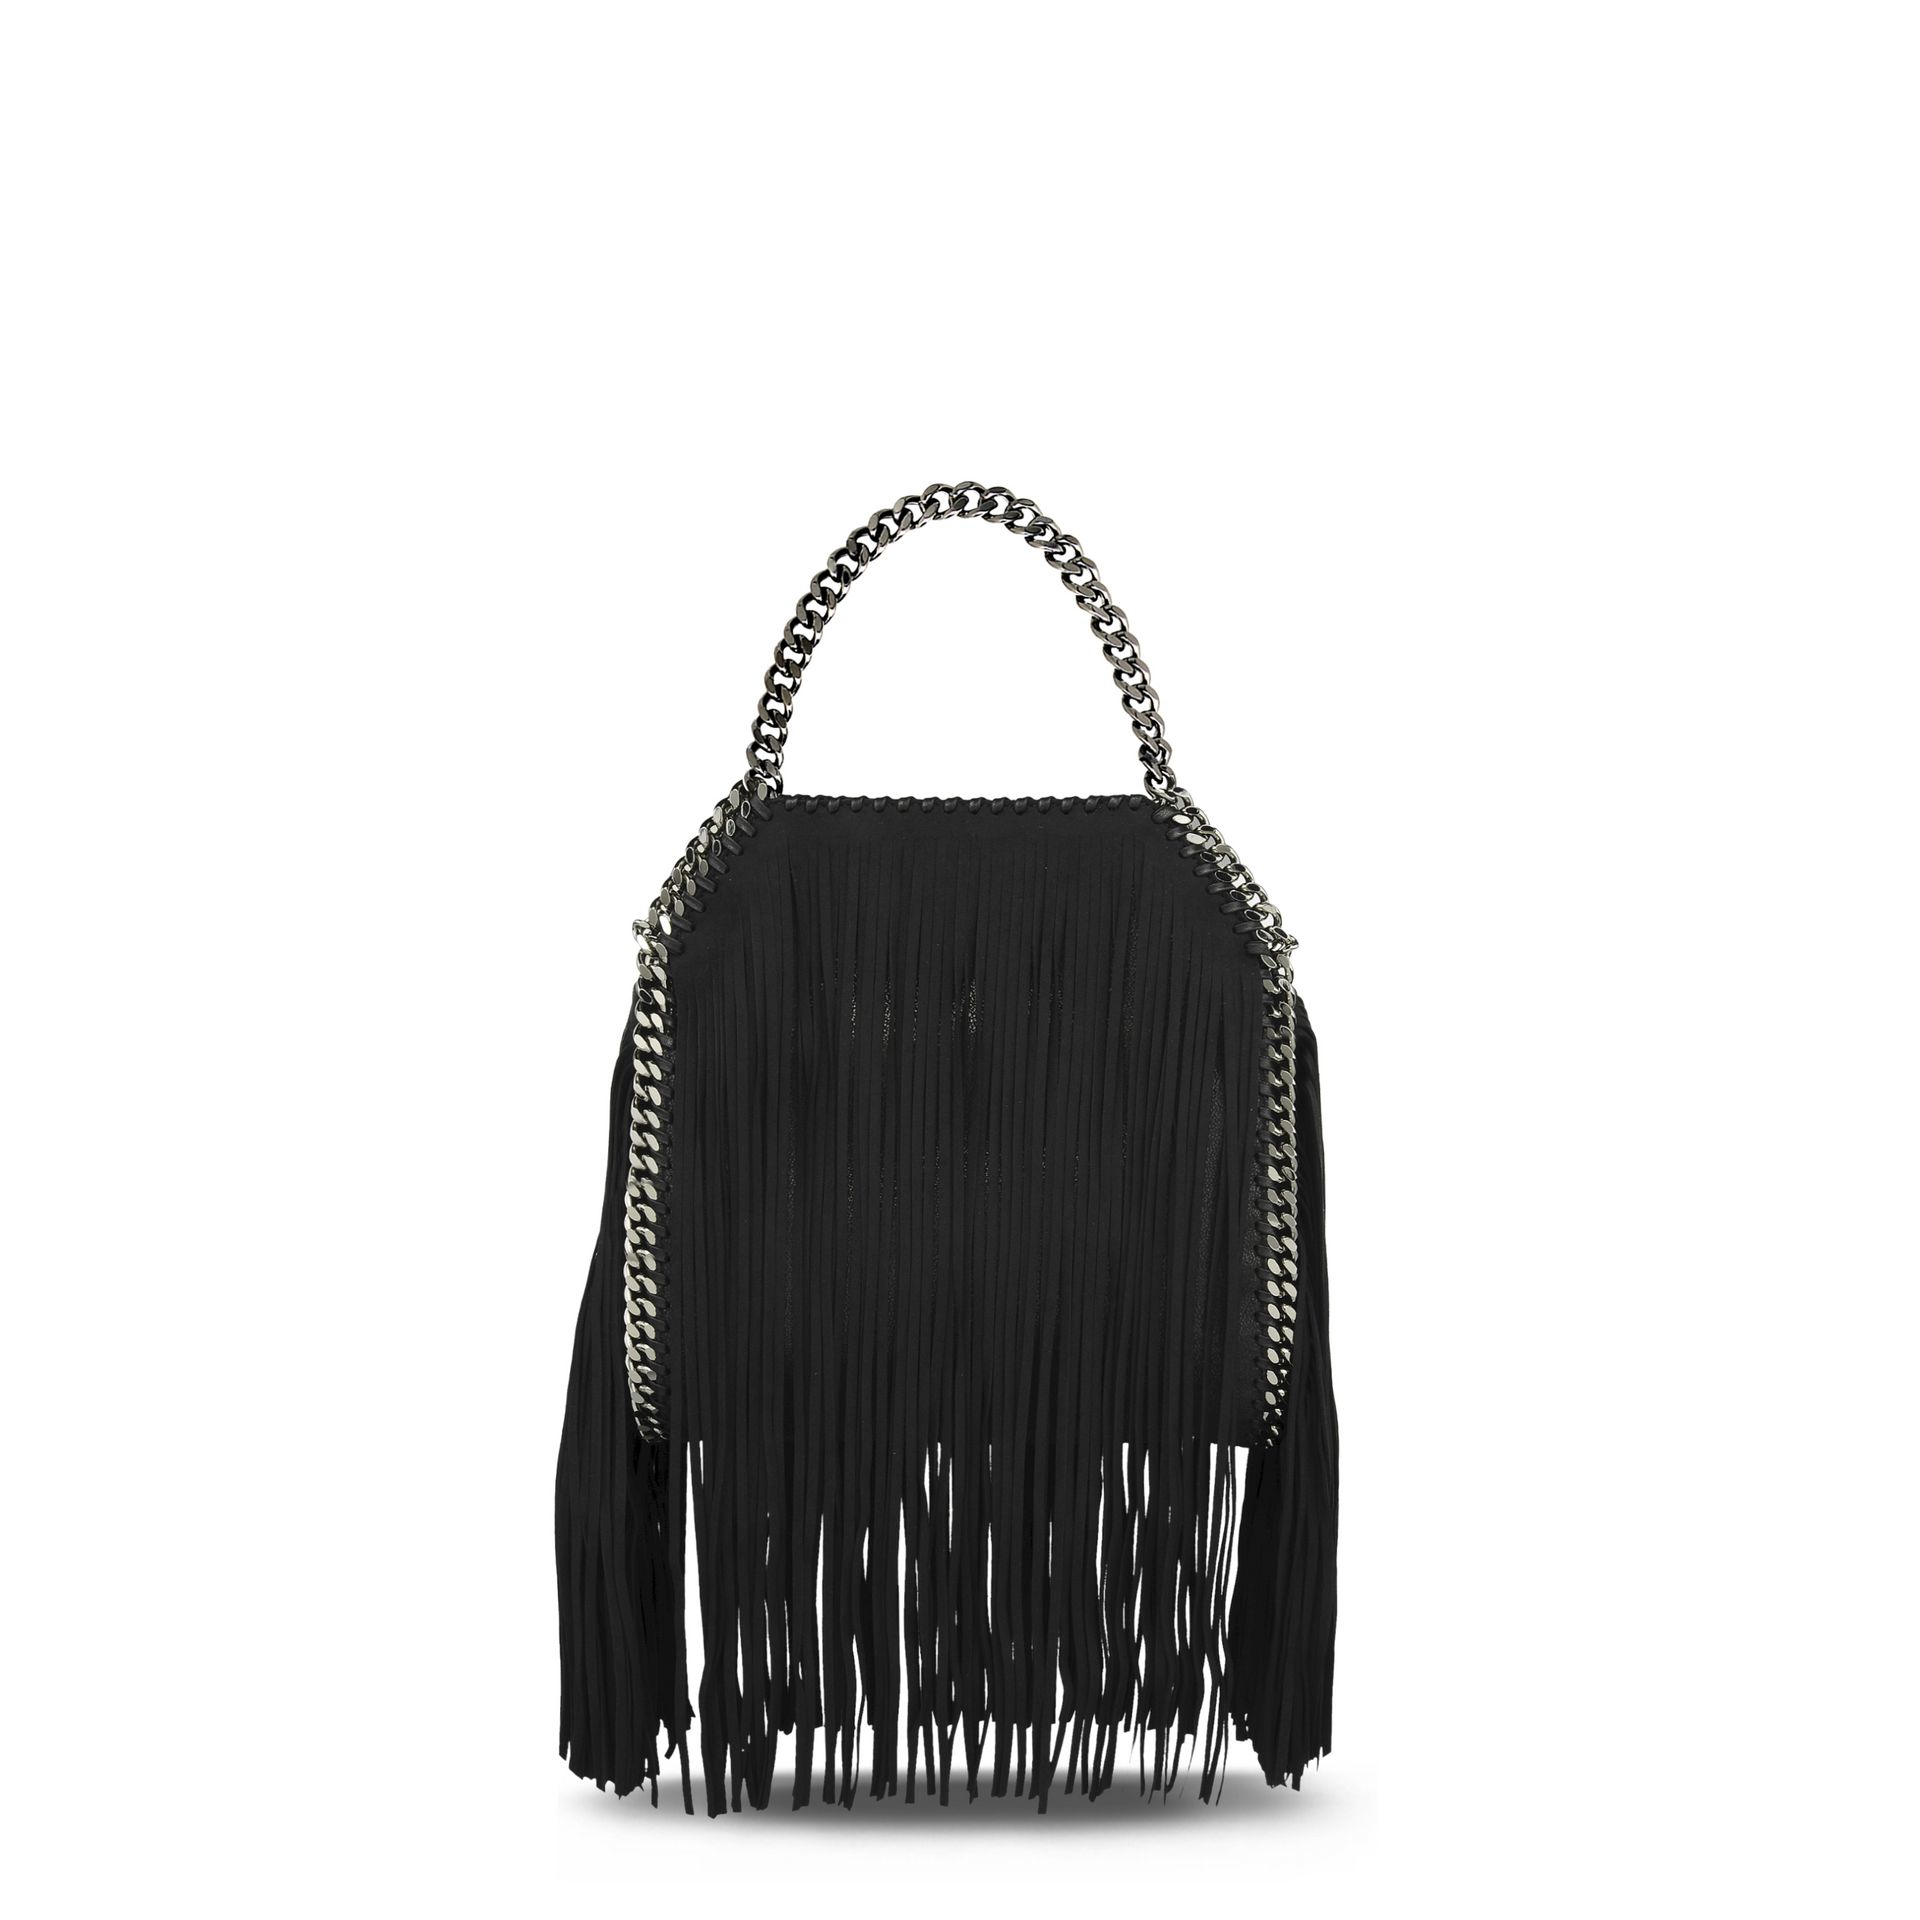 c74e27e50604 Lyst - Stella McCartney Black Falabella Shaggy Deer Fringed Mini ...